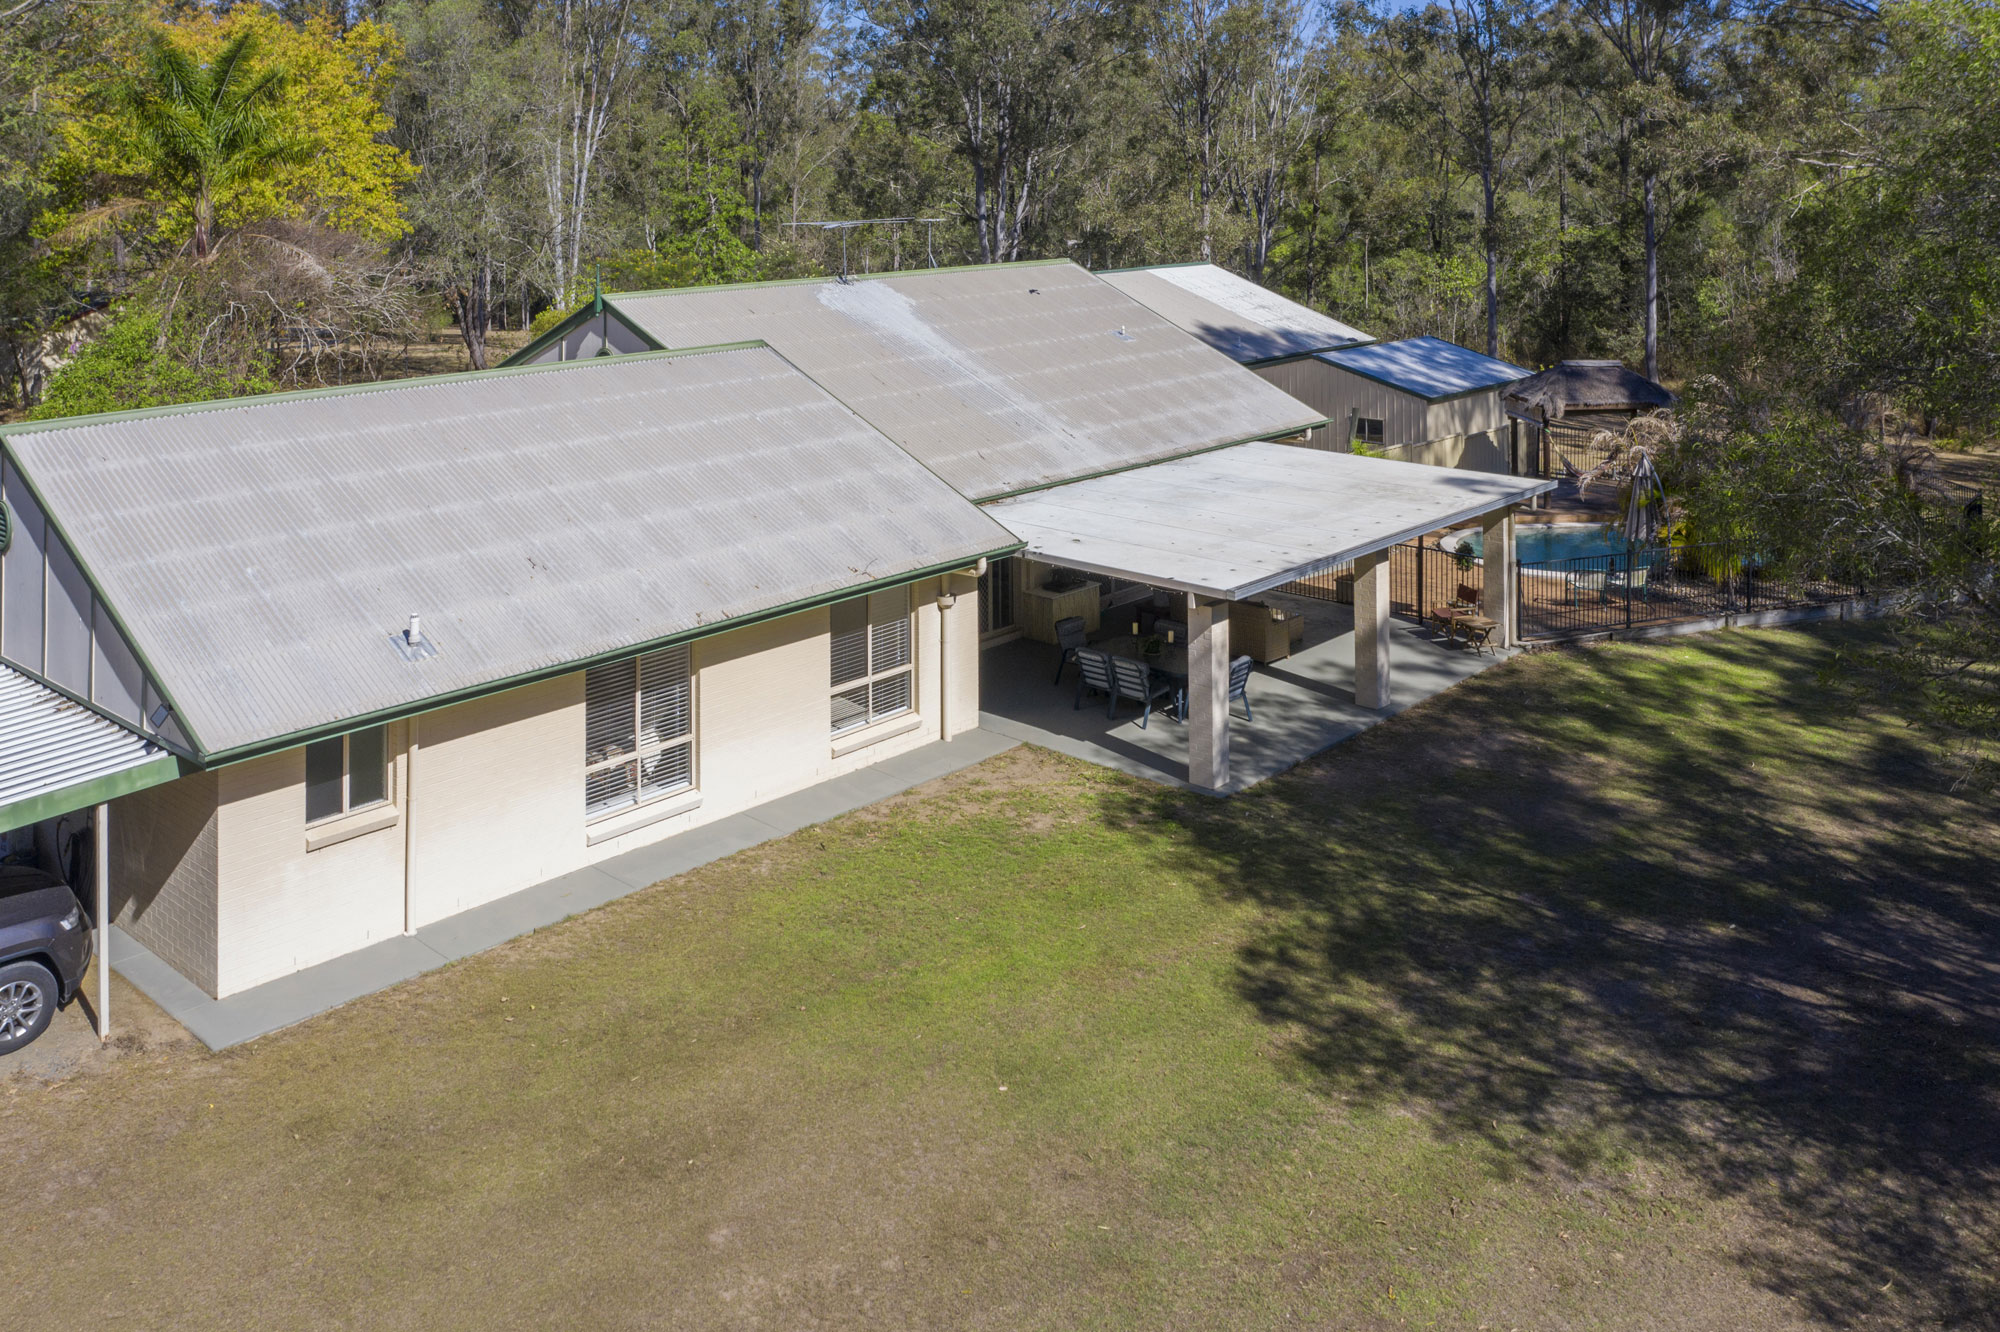 Drone photography acreage real estate Teviot Rd South Maclean looking at the rear of the home